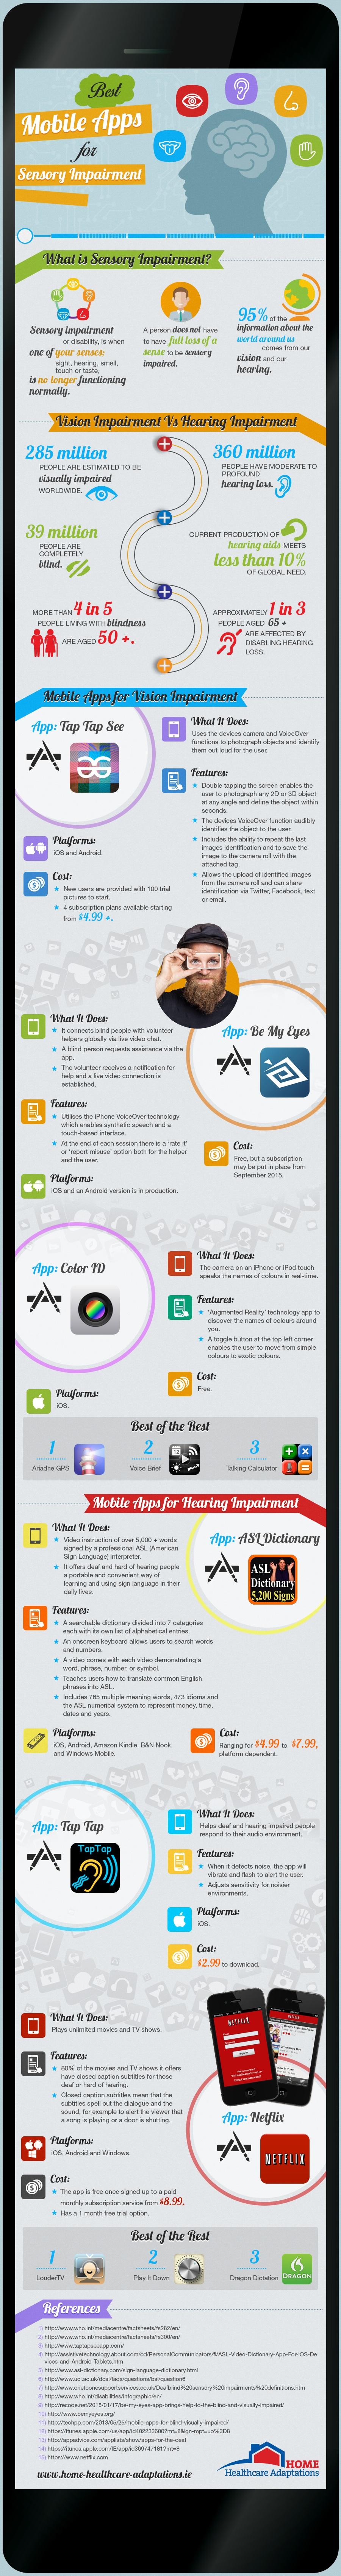 Best-Mobile-Apps-for-Sensory-Impairments-Infographic